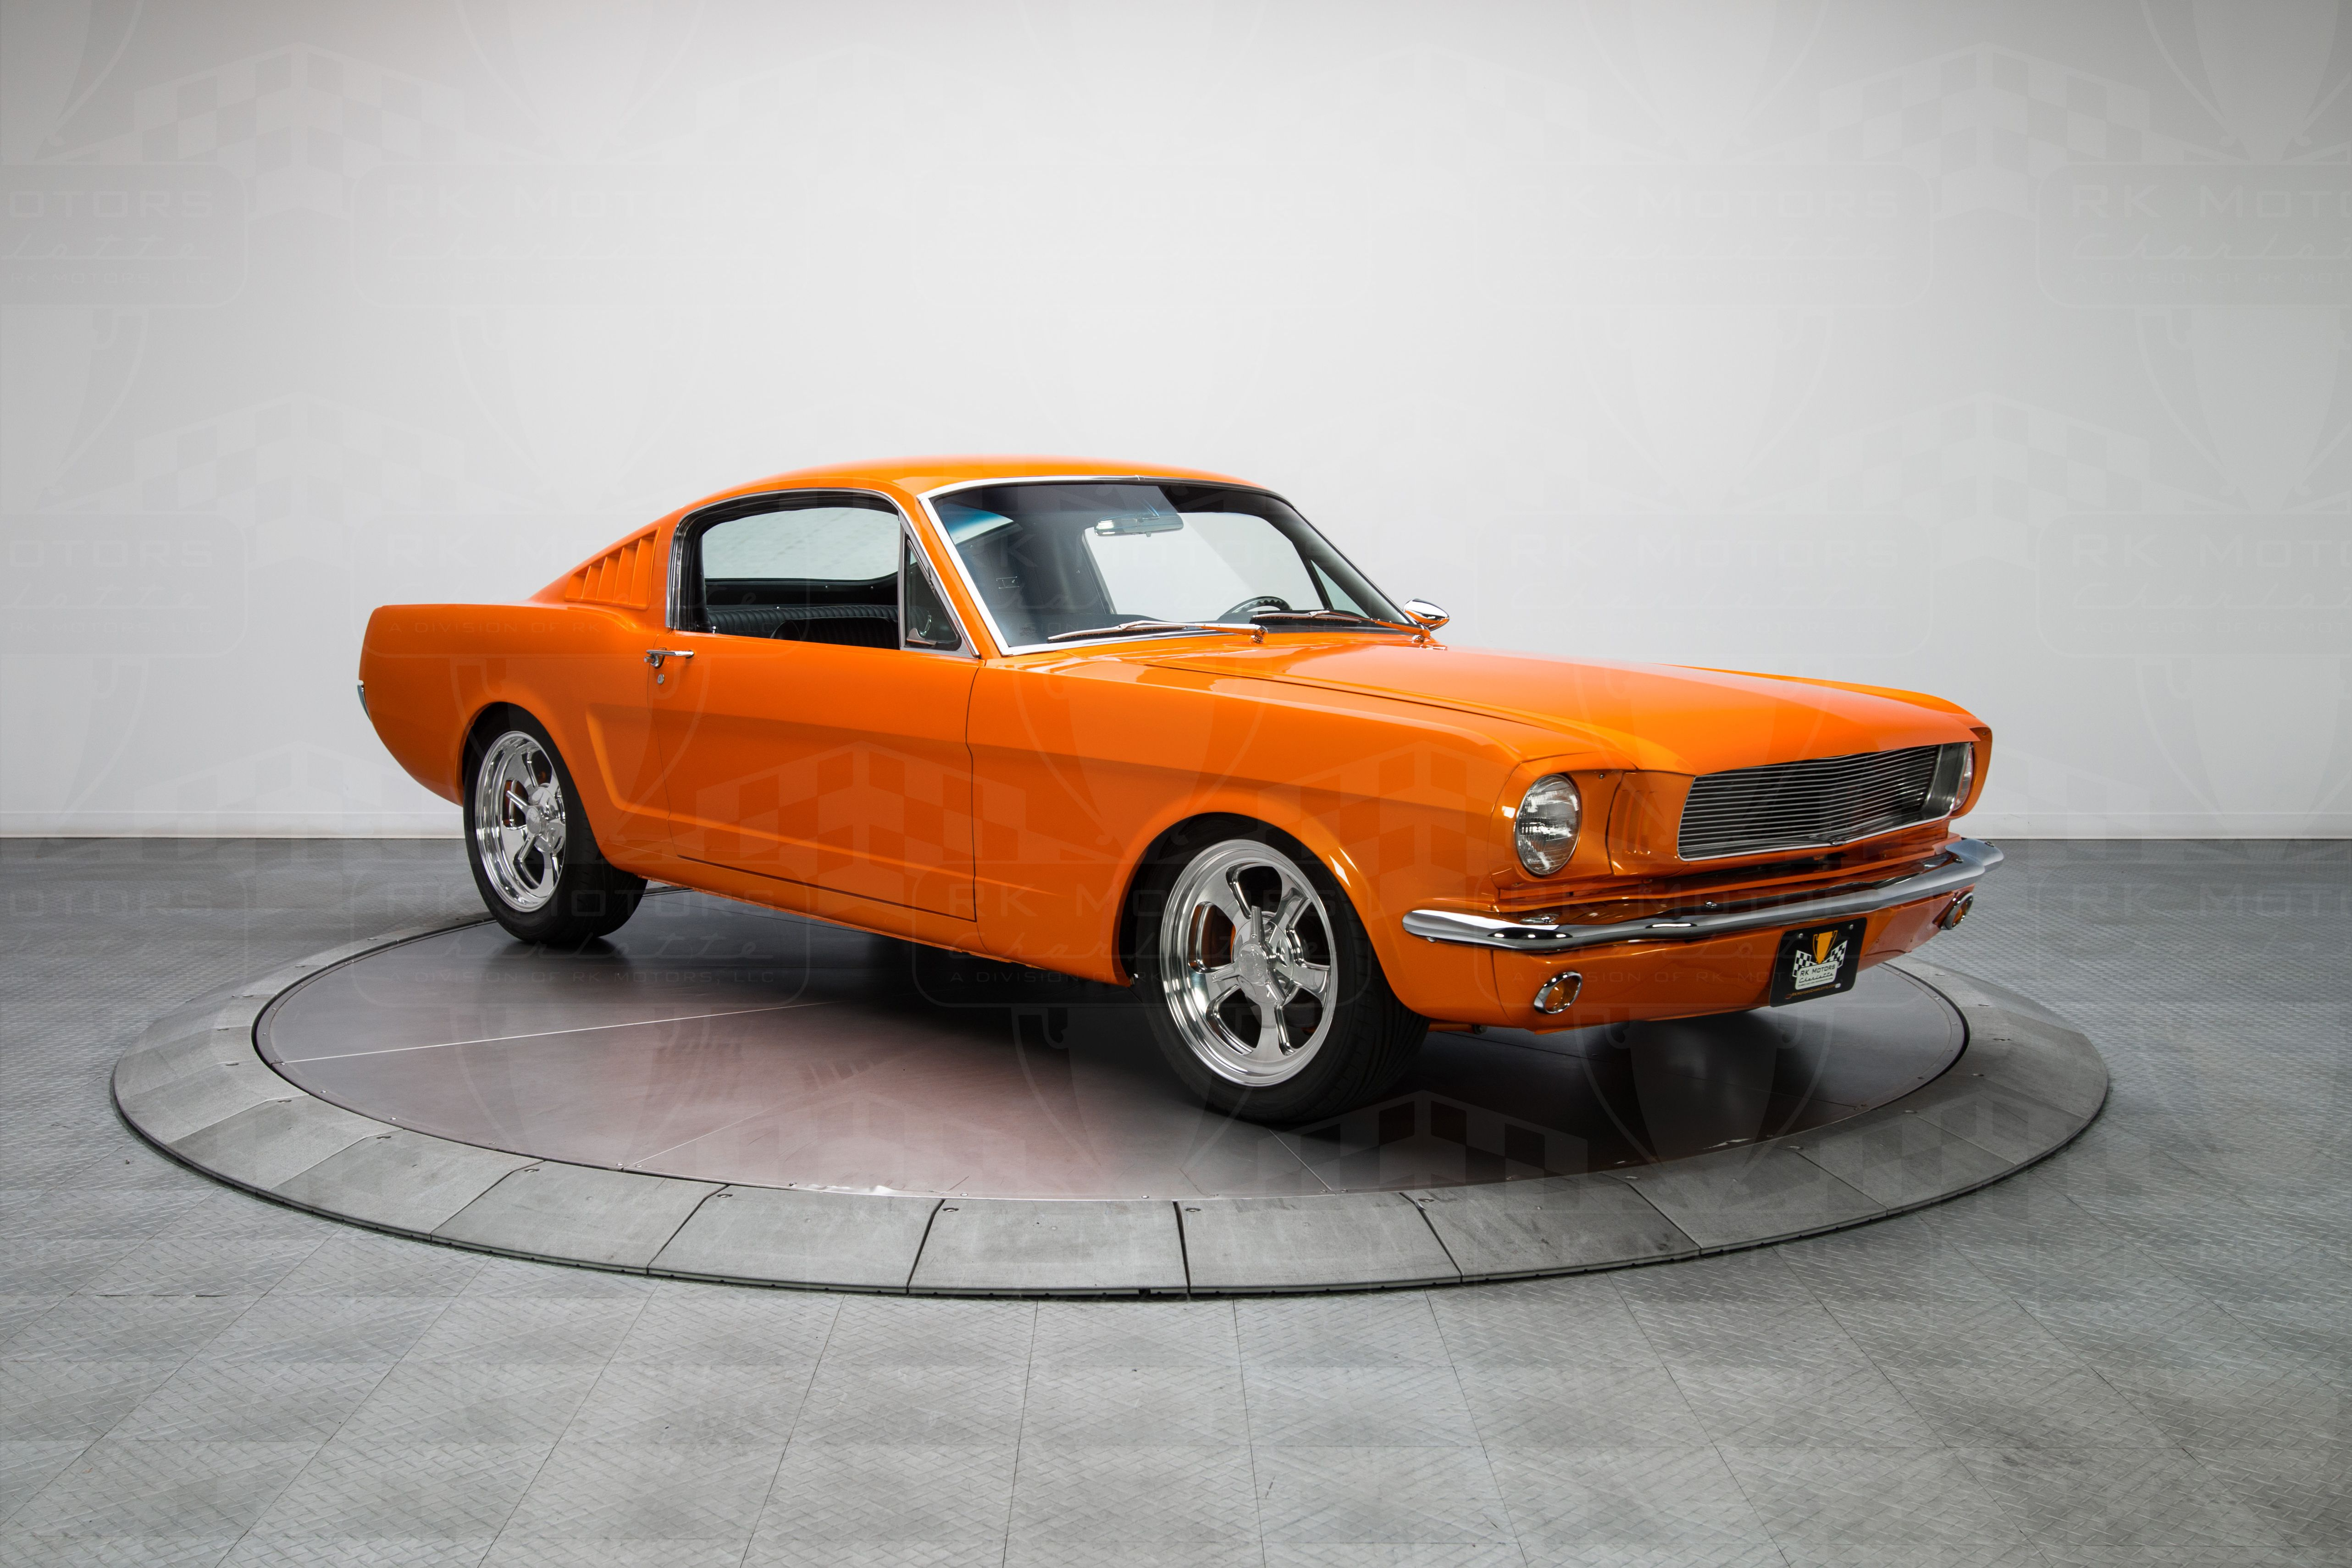 1965 Ford Mustang | Ford Mustang & Shelby | Pinterest | Ford mustang ...